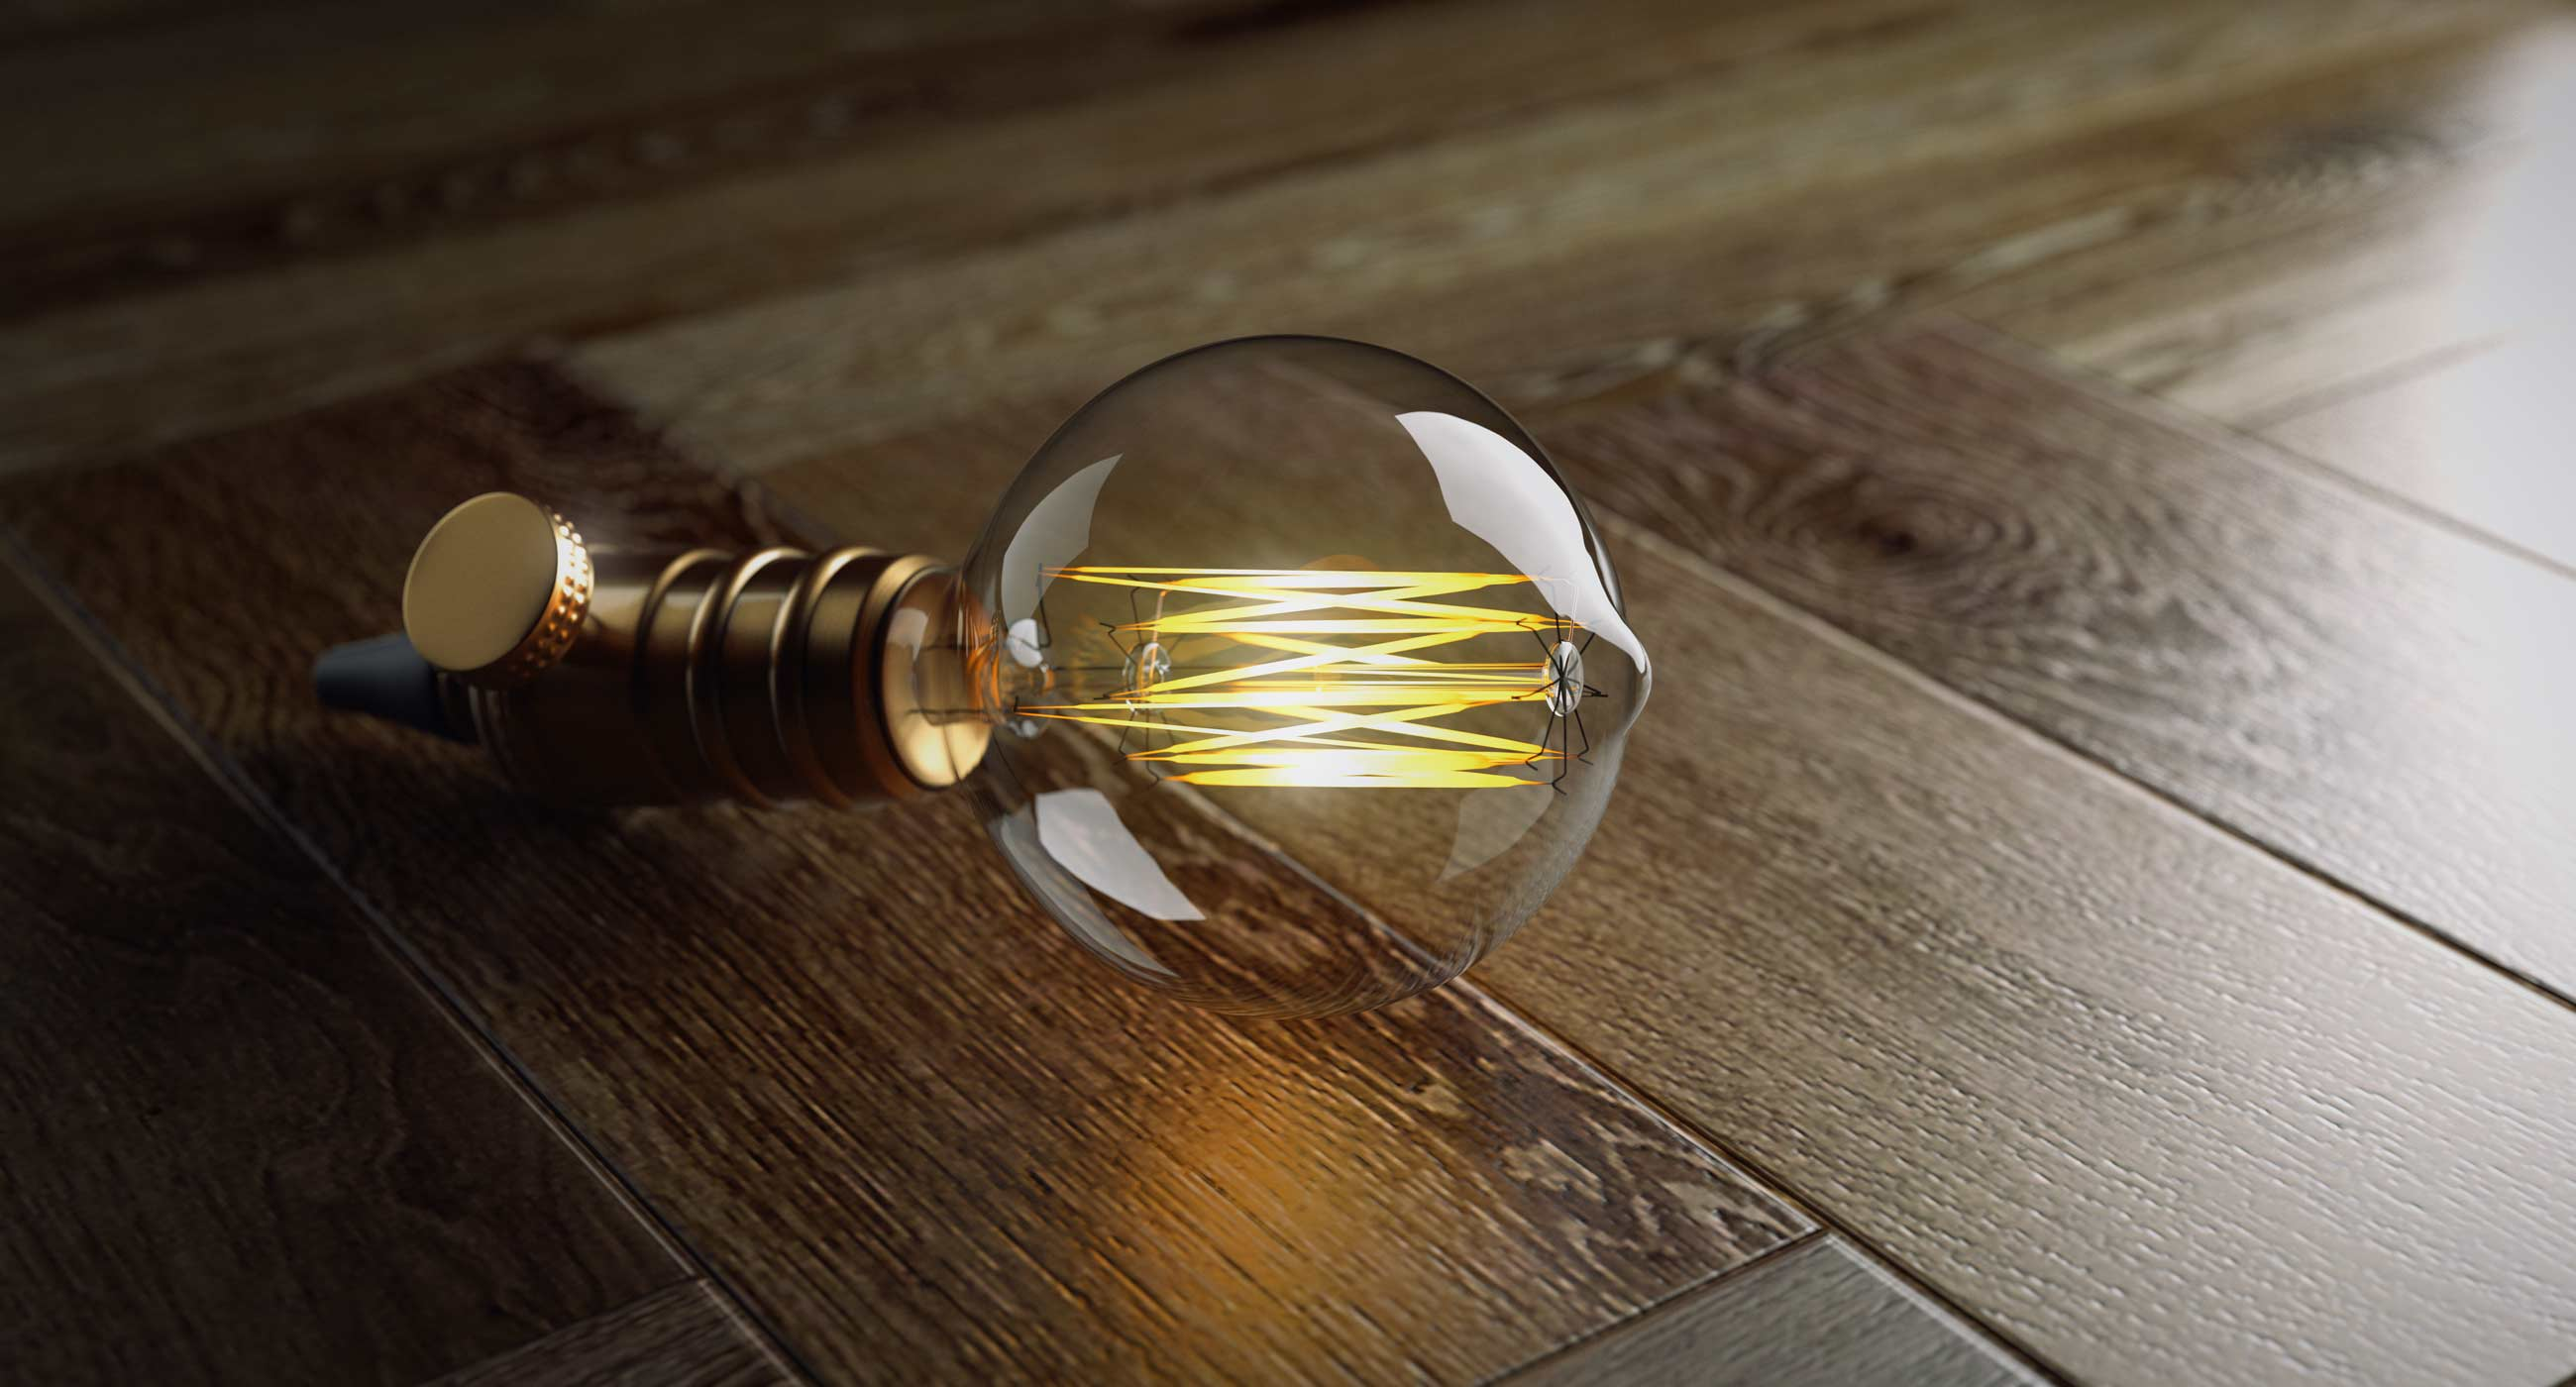 lightbulb_2600x1400